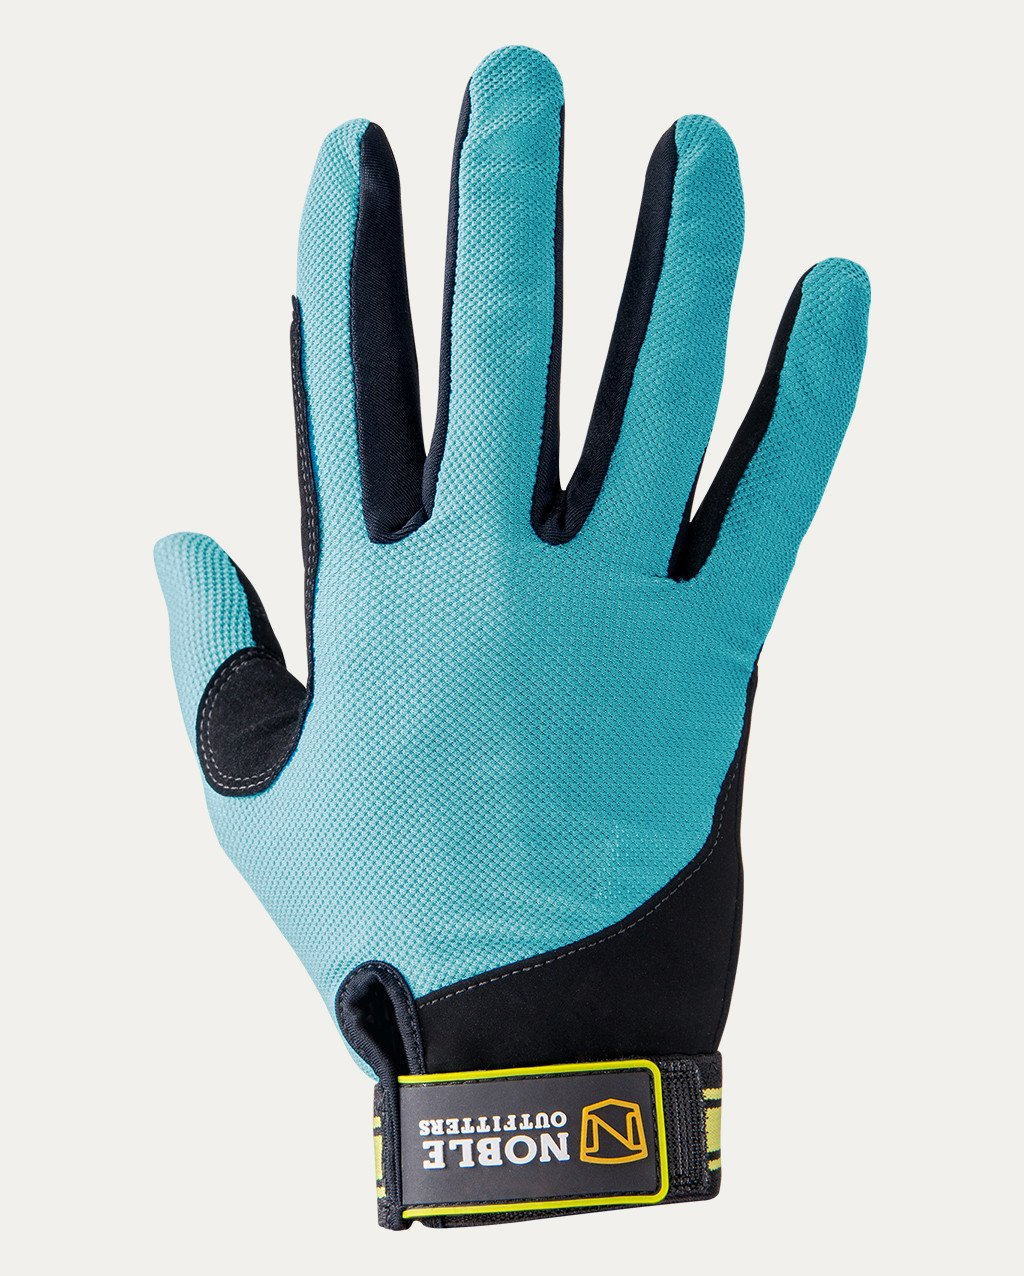 Noble Outfitters Glove Mesh Bionic Men's with Natural Fit Technology Driving Gloves, Black, X-Large Giro Monaco Gloves Black Diamond Men's Screentap Fleece Gloves Burton AK Oven Mitten with Down Insulation and Fleece Lining Bionic Men's with Natural Fit Technology Driving Gloves, Black, Medium